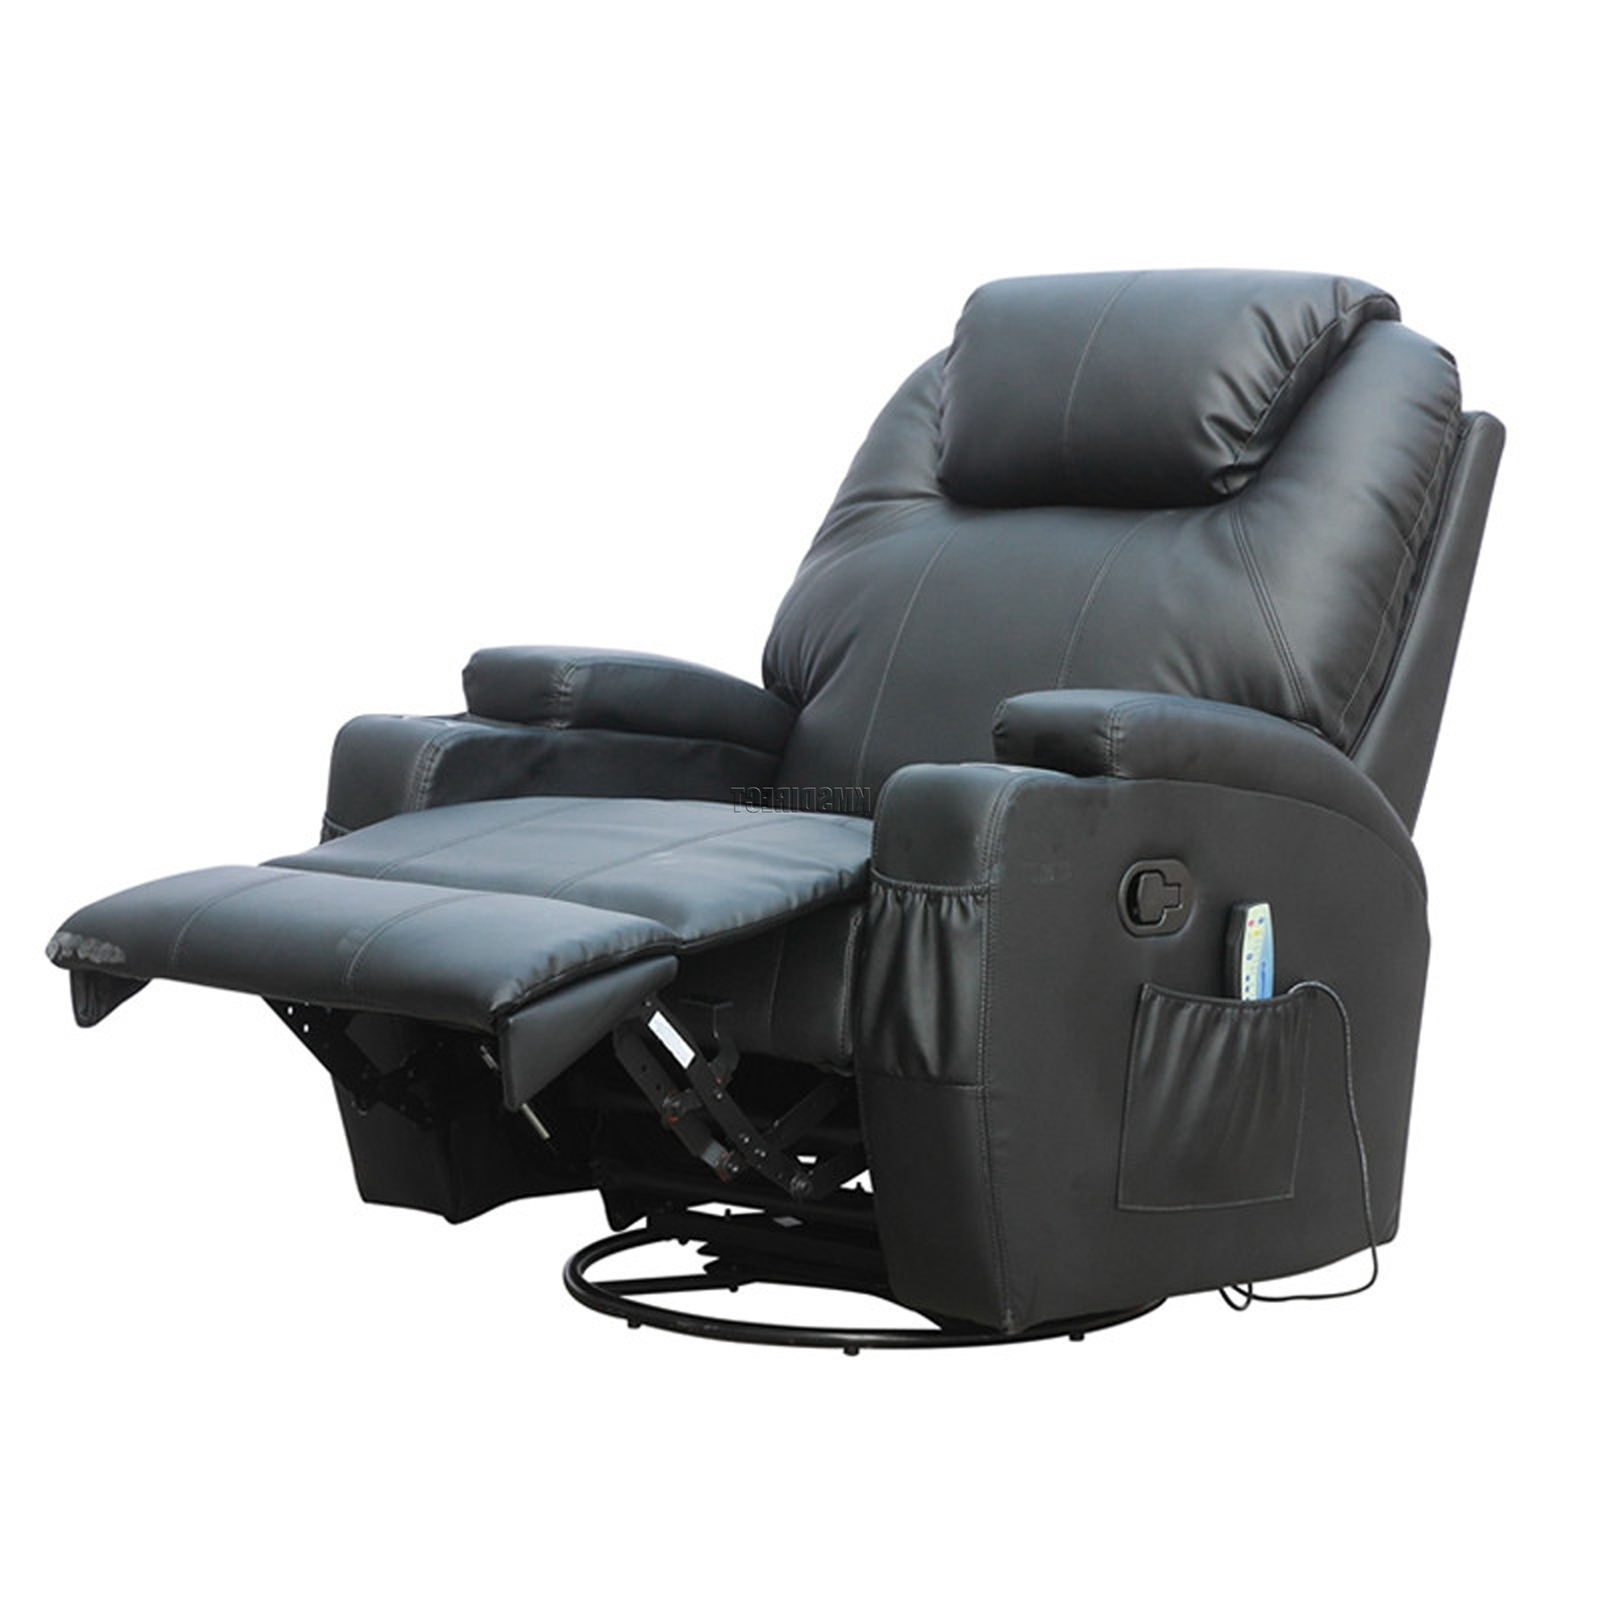 Rocking Sofa Chairs With Regard To Newest Foxhunter Bonded Leather Sofa Massage Recliner Chair Swivel (View 6 of 20)